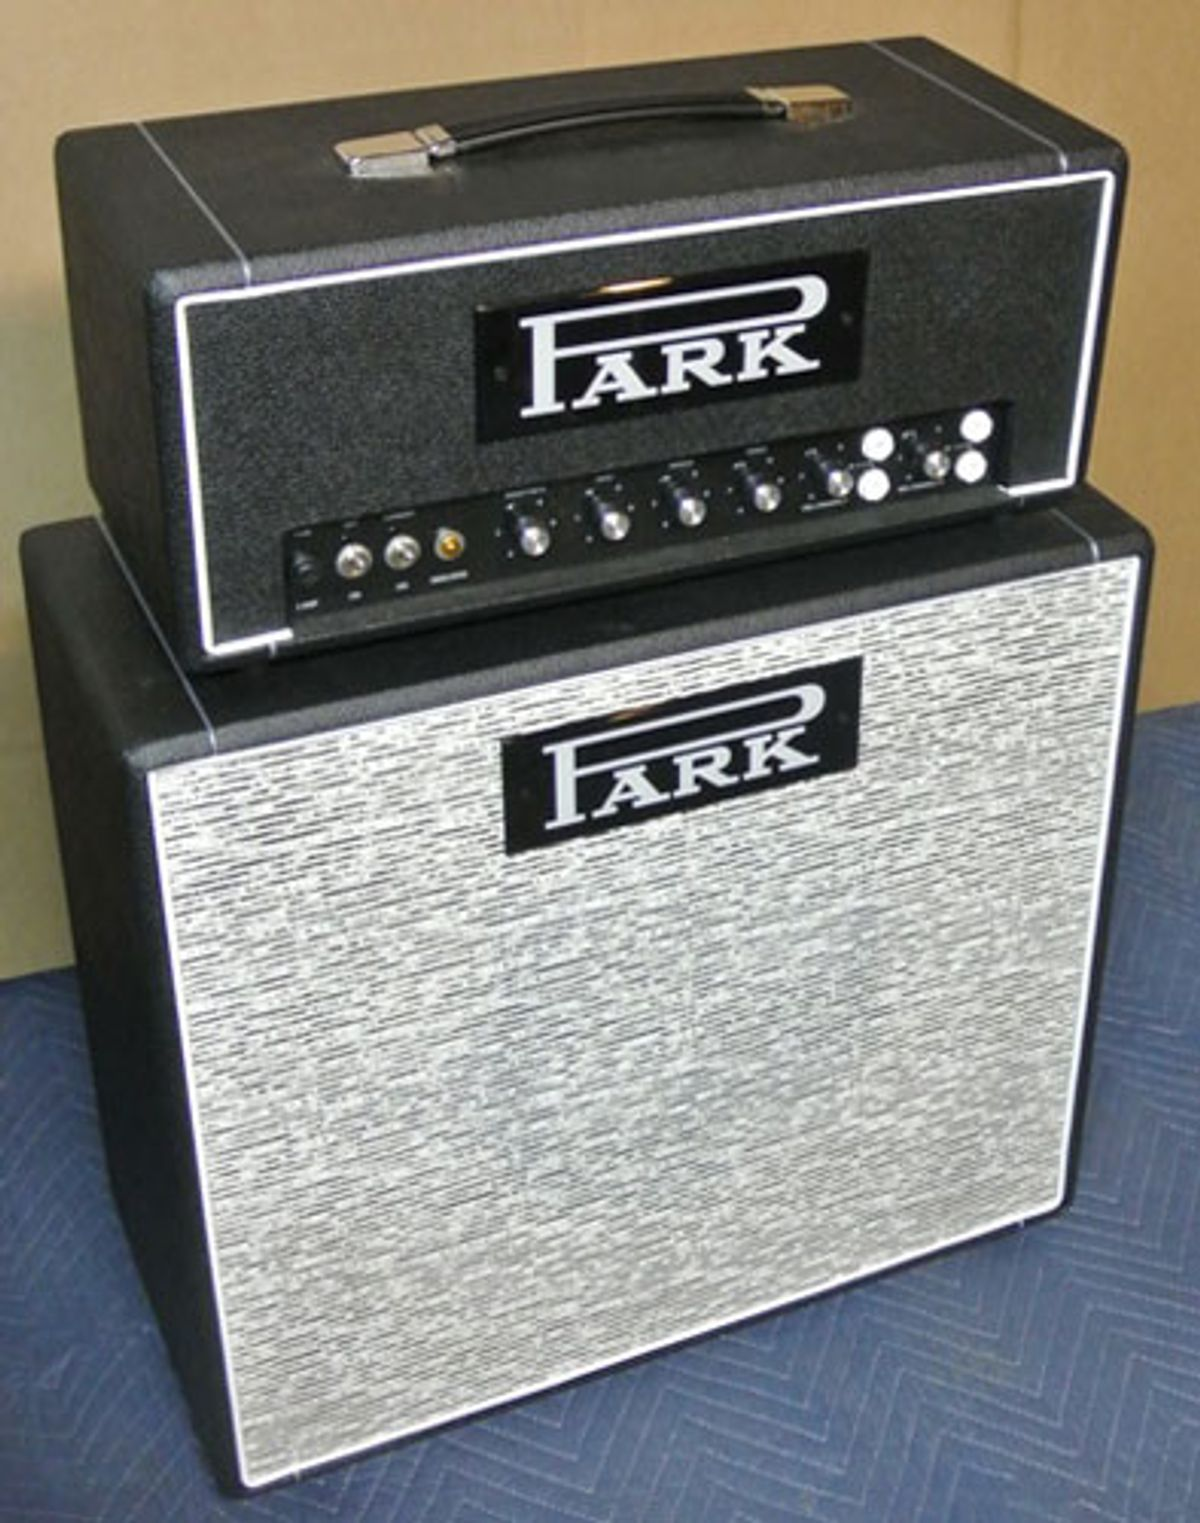 Park Amplifiers Introduces the Little Head 18 and Rock Head 50